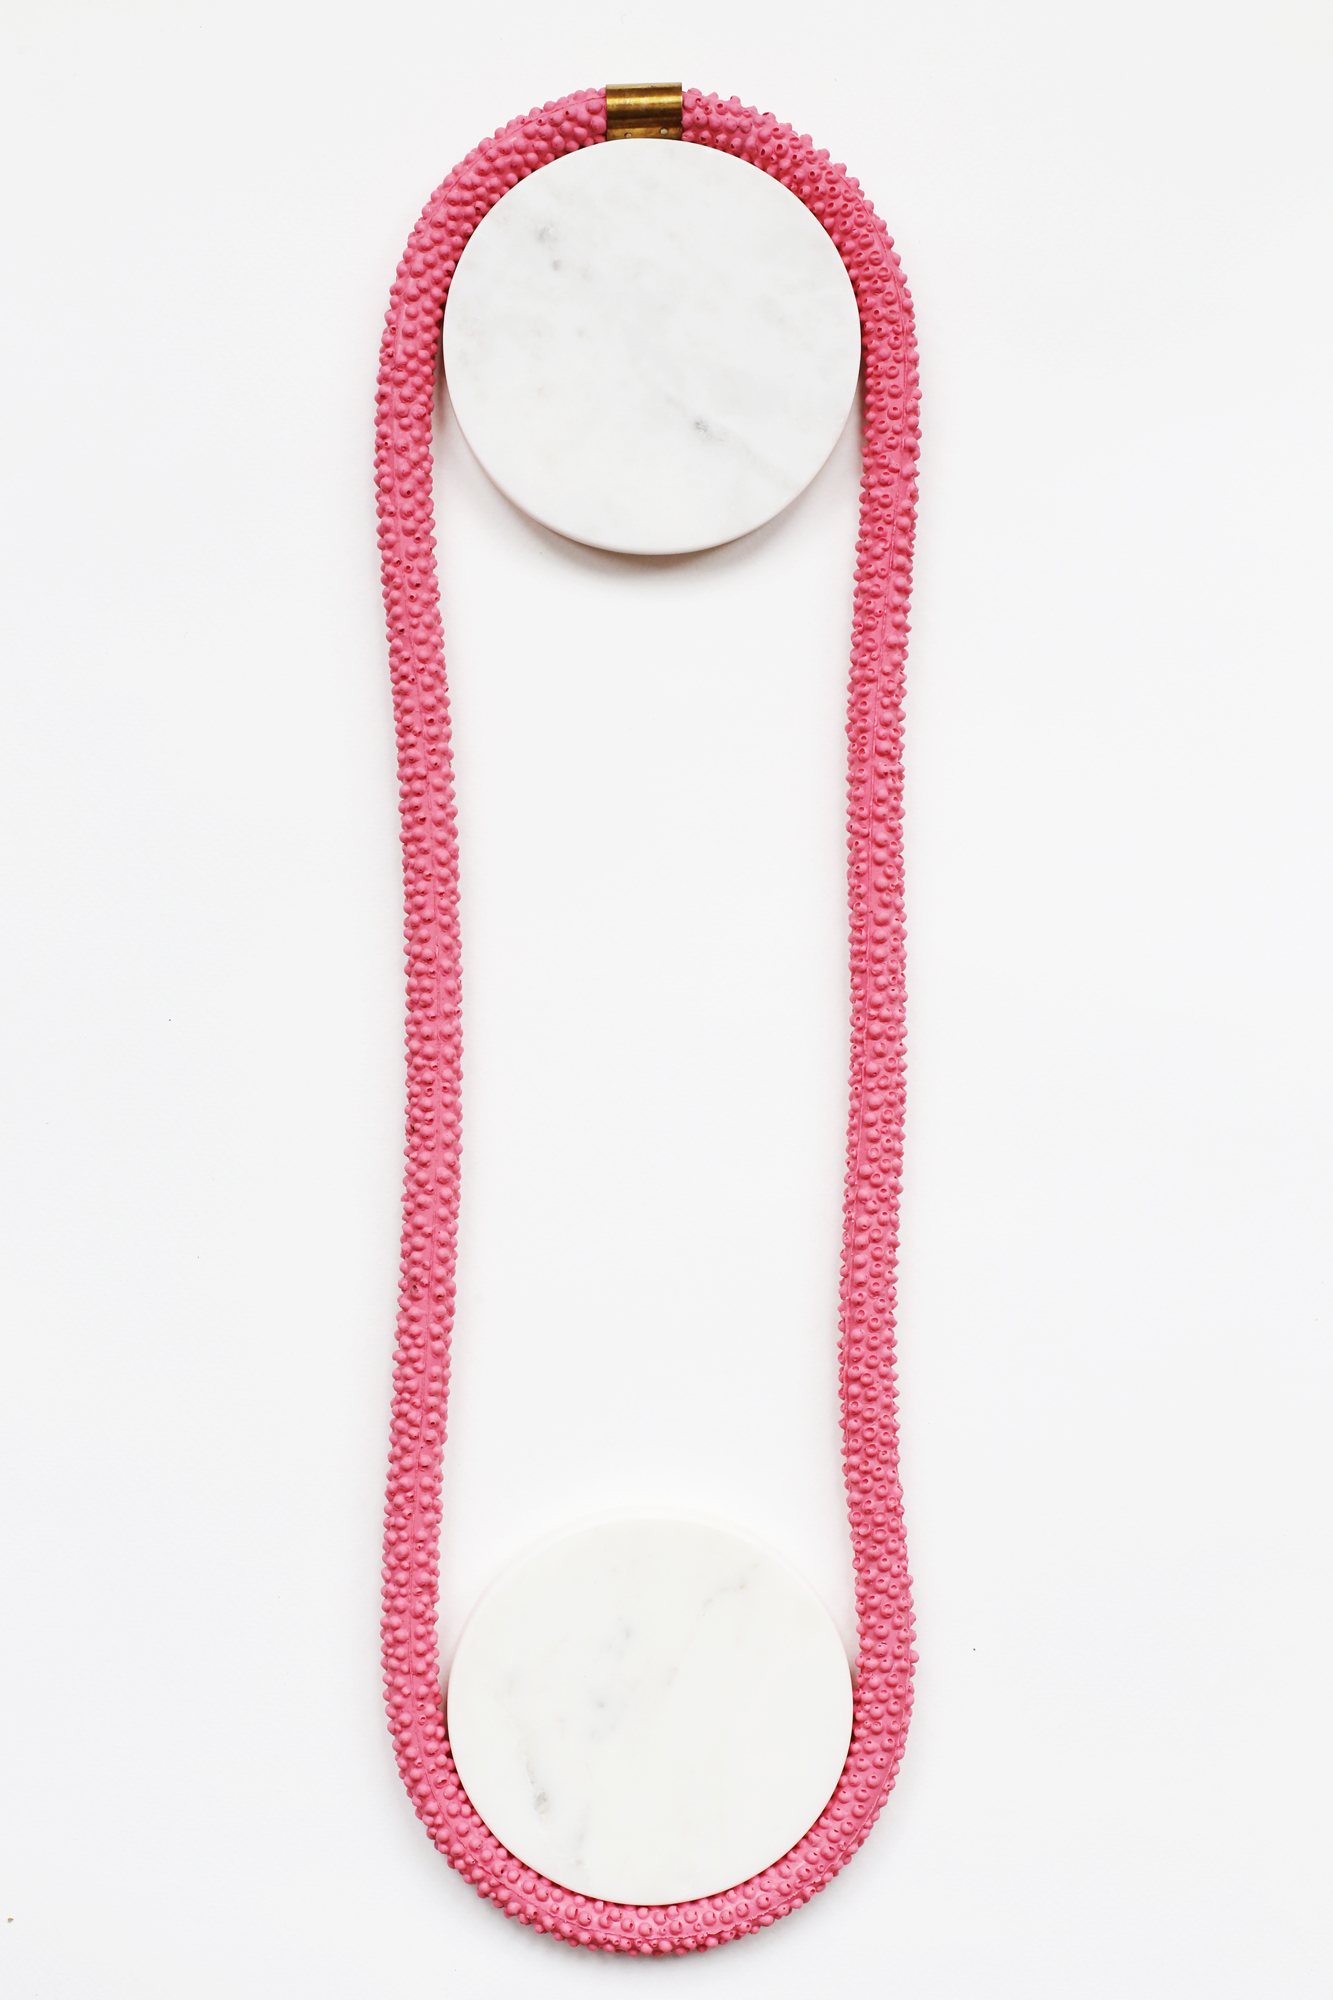 Nautilus | Statement Silicone Necklace | Pink